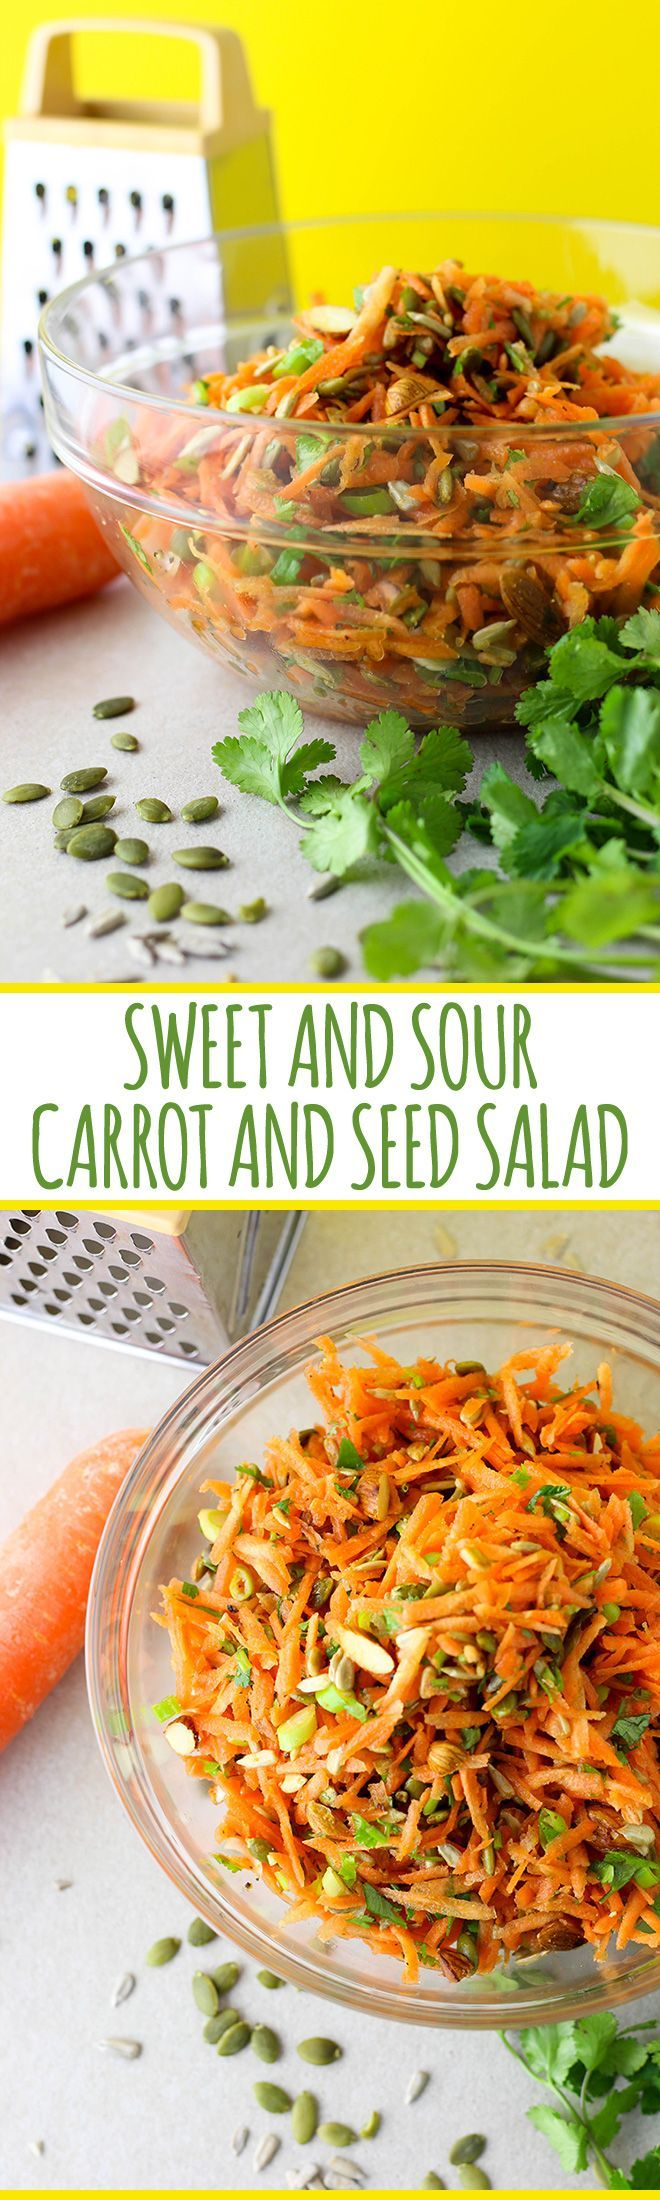 This easy salad is a great mix of crunchy, sweet and sour, and an excellent side dish to have up your sleeve. #vegan #vegetarian #glutenfree #dairyfree #salads #recipes #sides #easy #quick